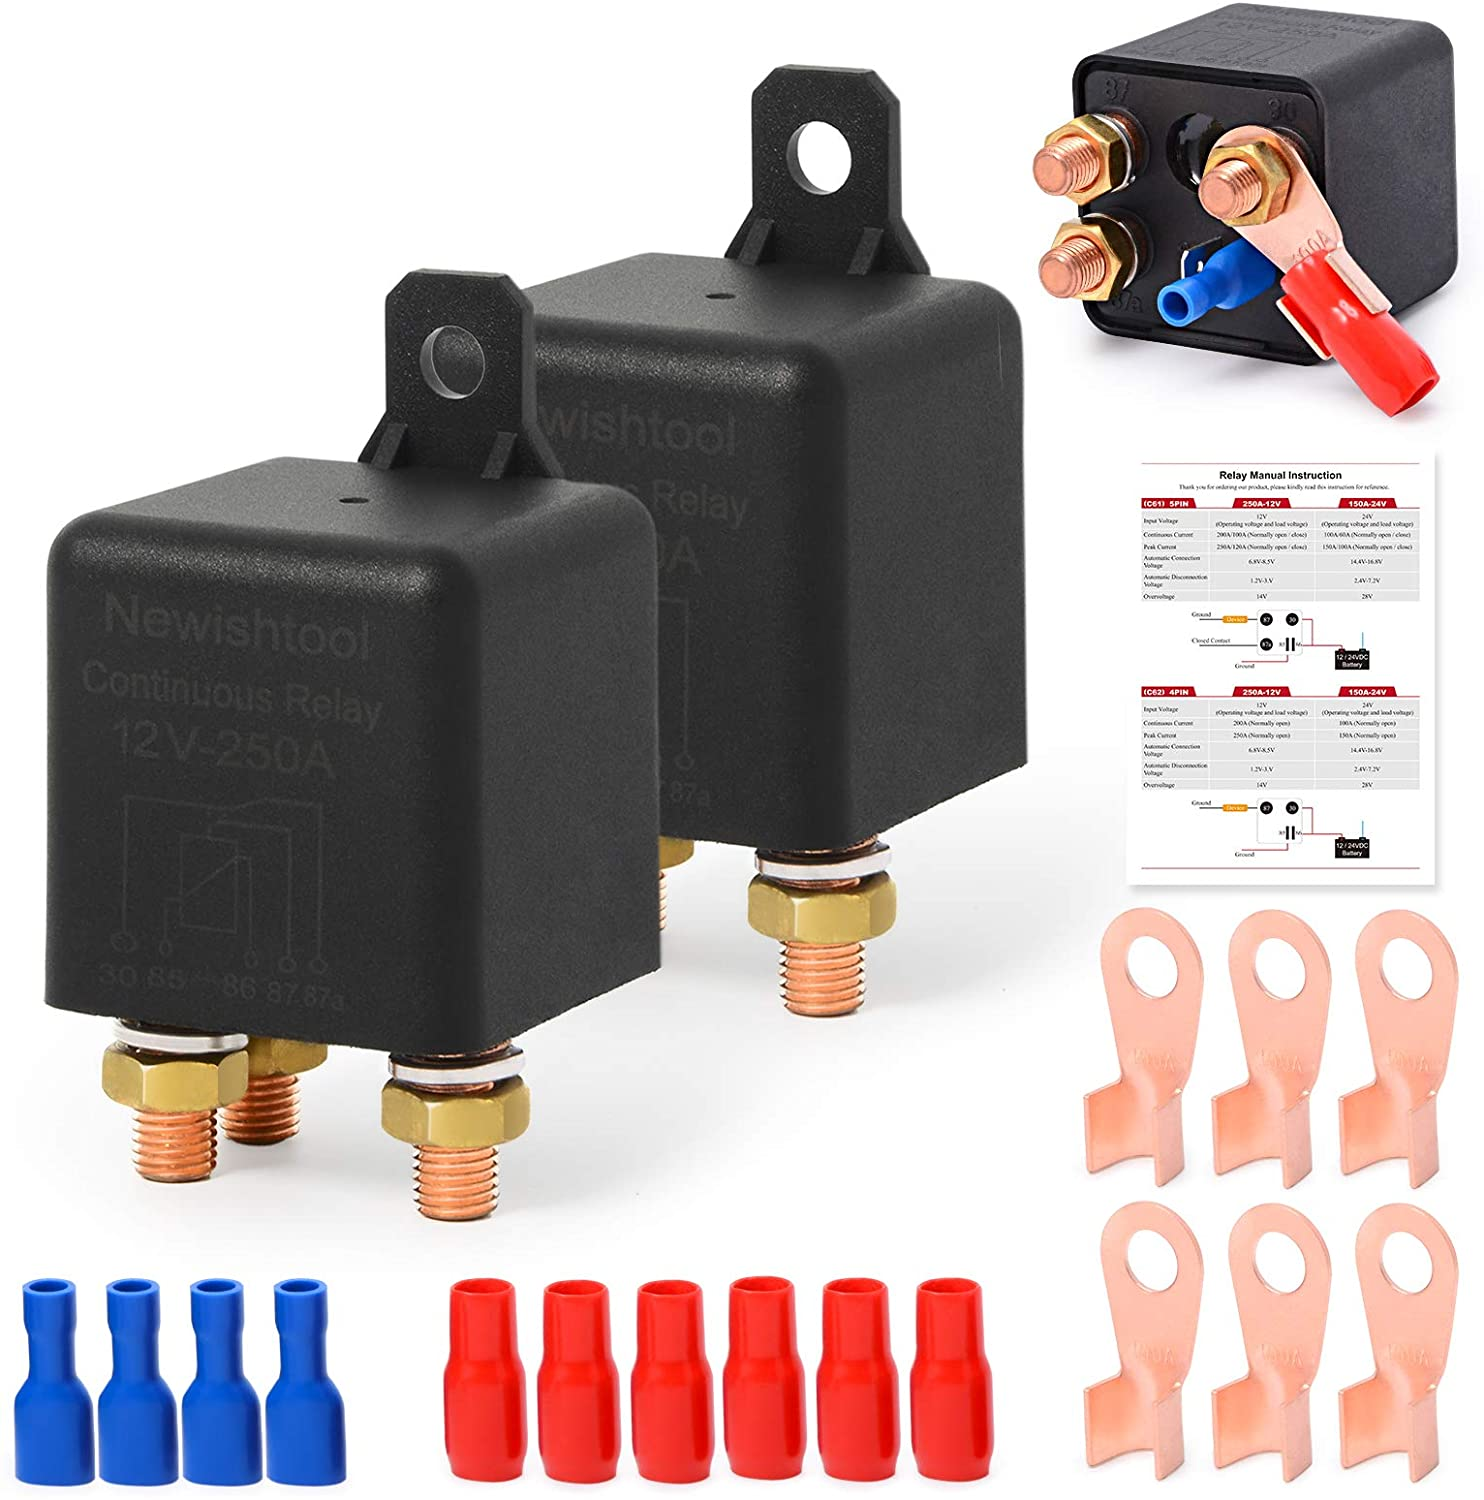 12V 250A Continuous Relay On/Off Power Switcher Automotive Starter Relays for Car Truck Boat Electrical Control, 5 Pin SPDT Split Charger + Heavy Duty Copper Lugs with Boots + Wire Terminal Connectors